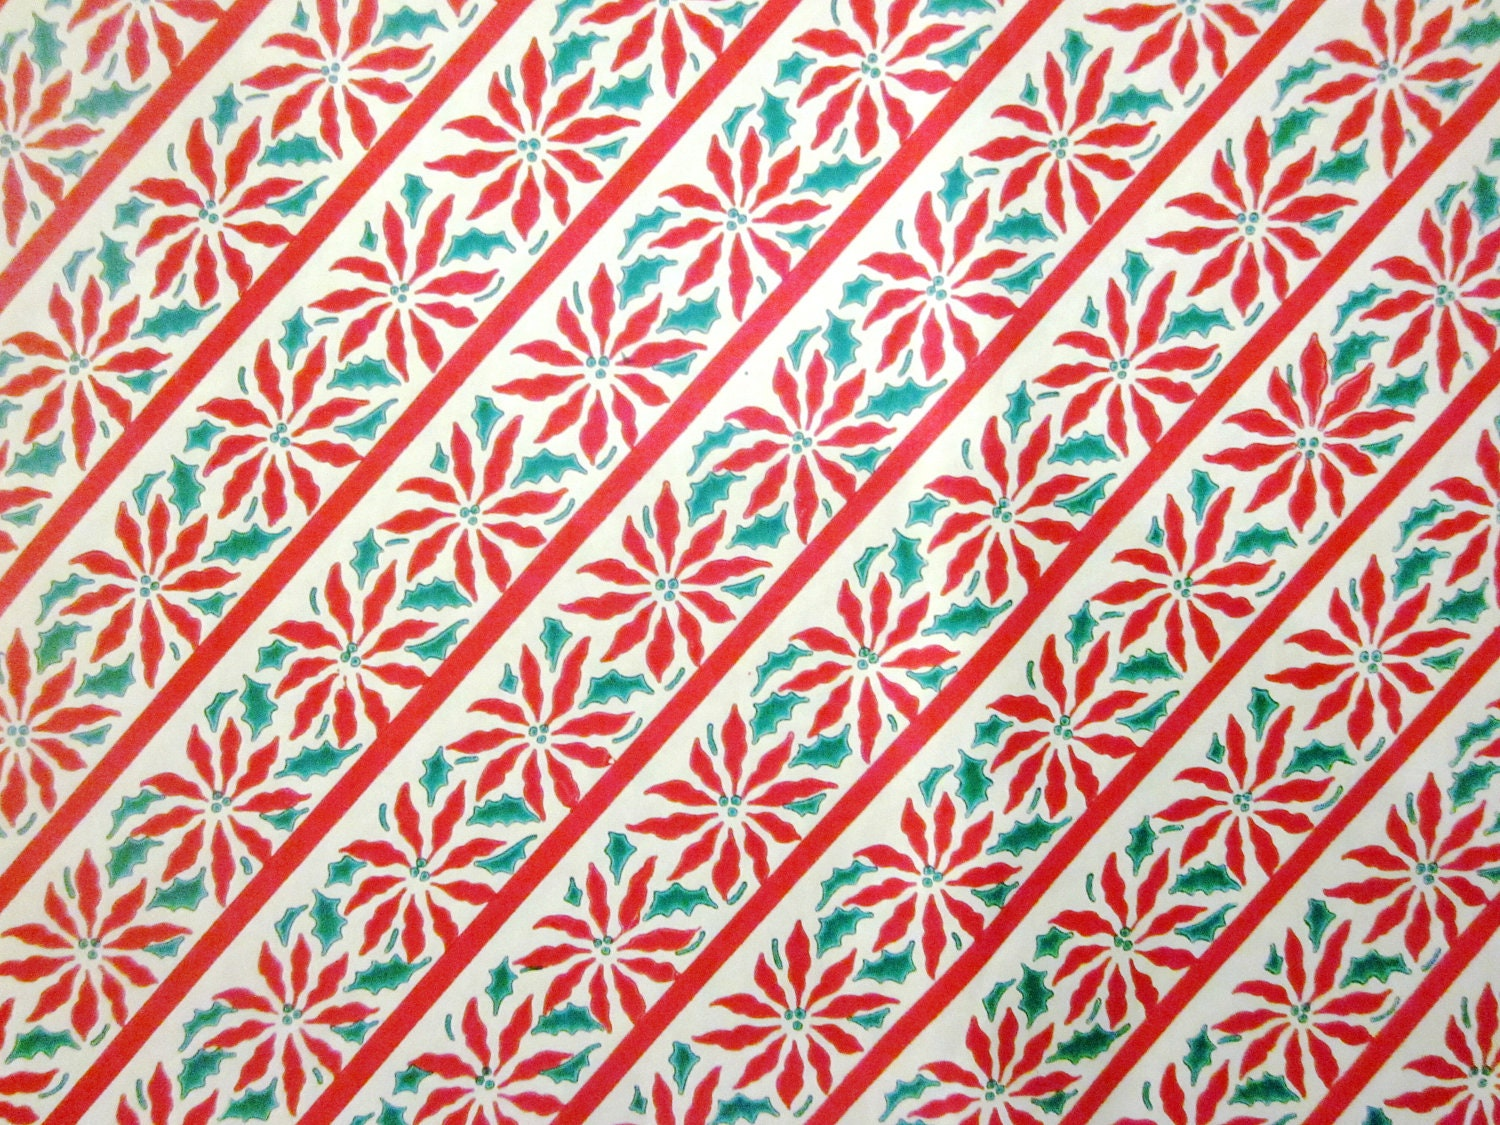 Vintage Wrapping Paper Poinsettia Pattern Full by TillaHomestead